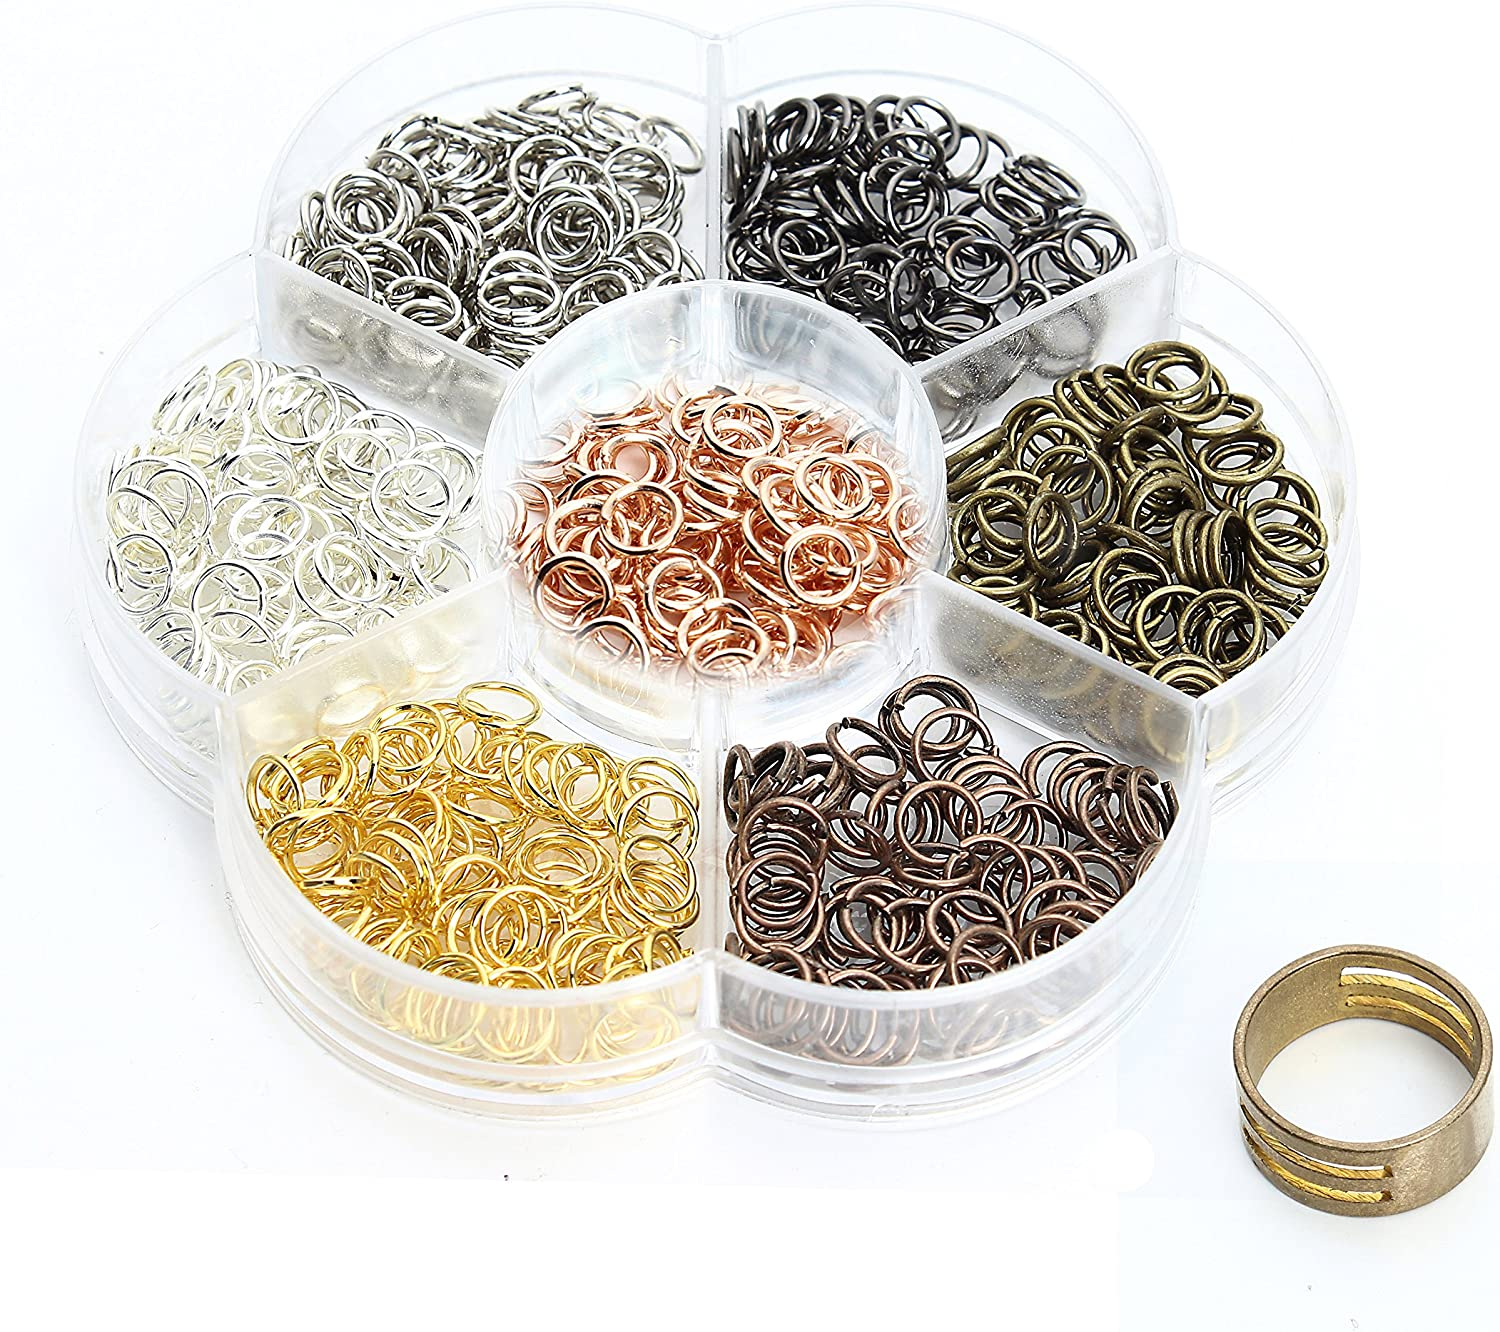 Linsoir Beads Bulk Sale Antique Bronze Plated Jump Rings Set Mixed Sizes O Rings for Jewelry Making Plastic Box Included 1 Pc